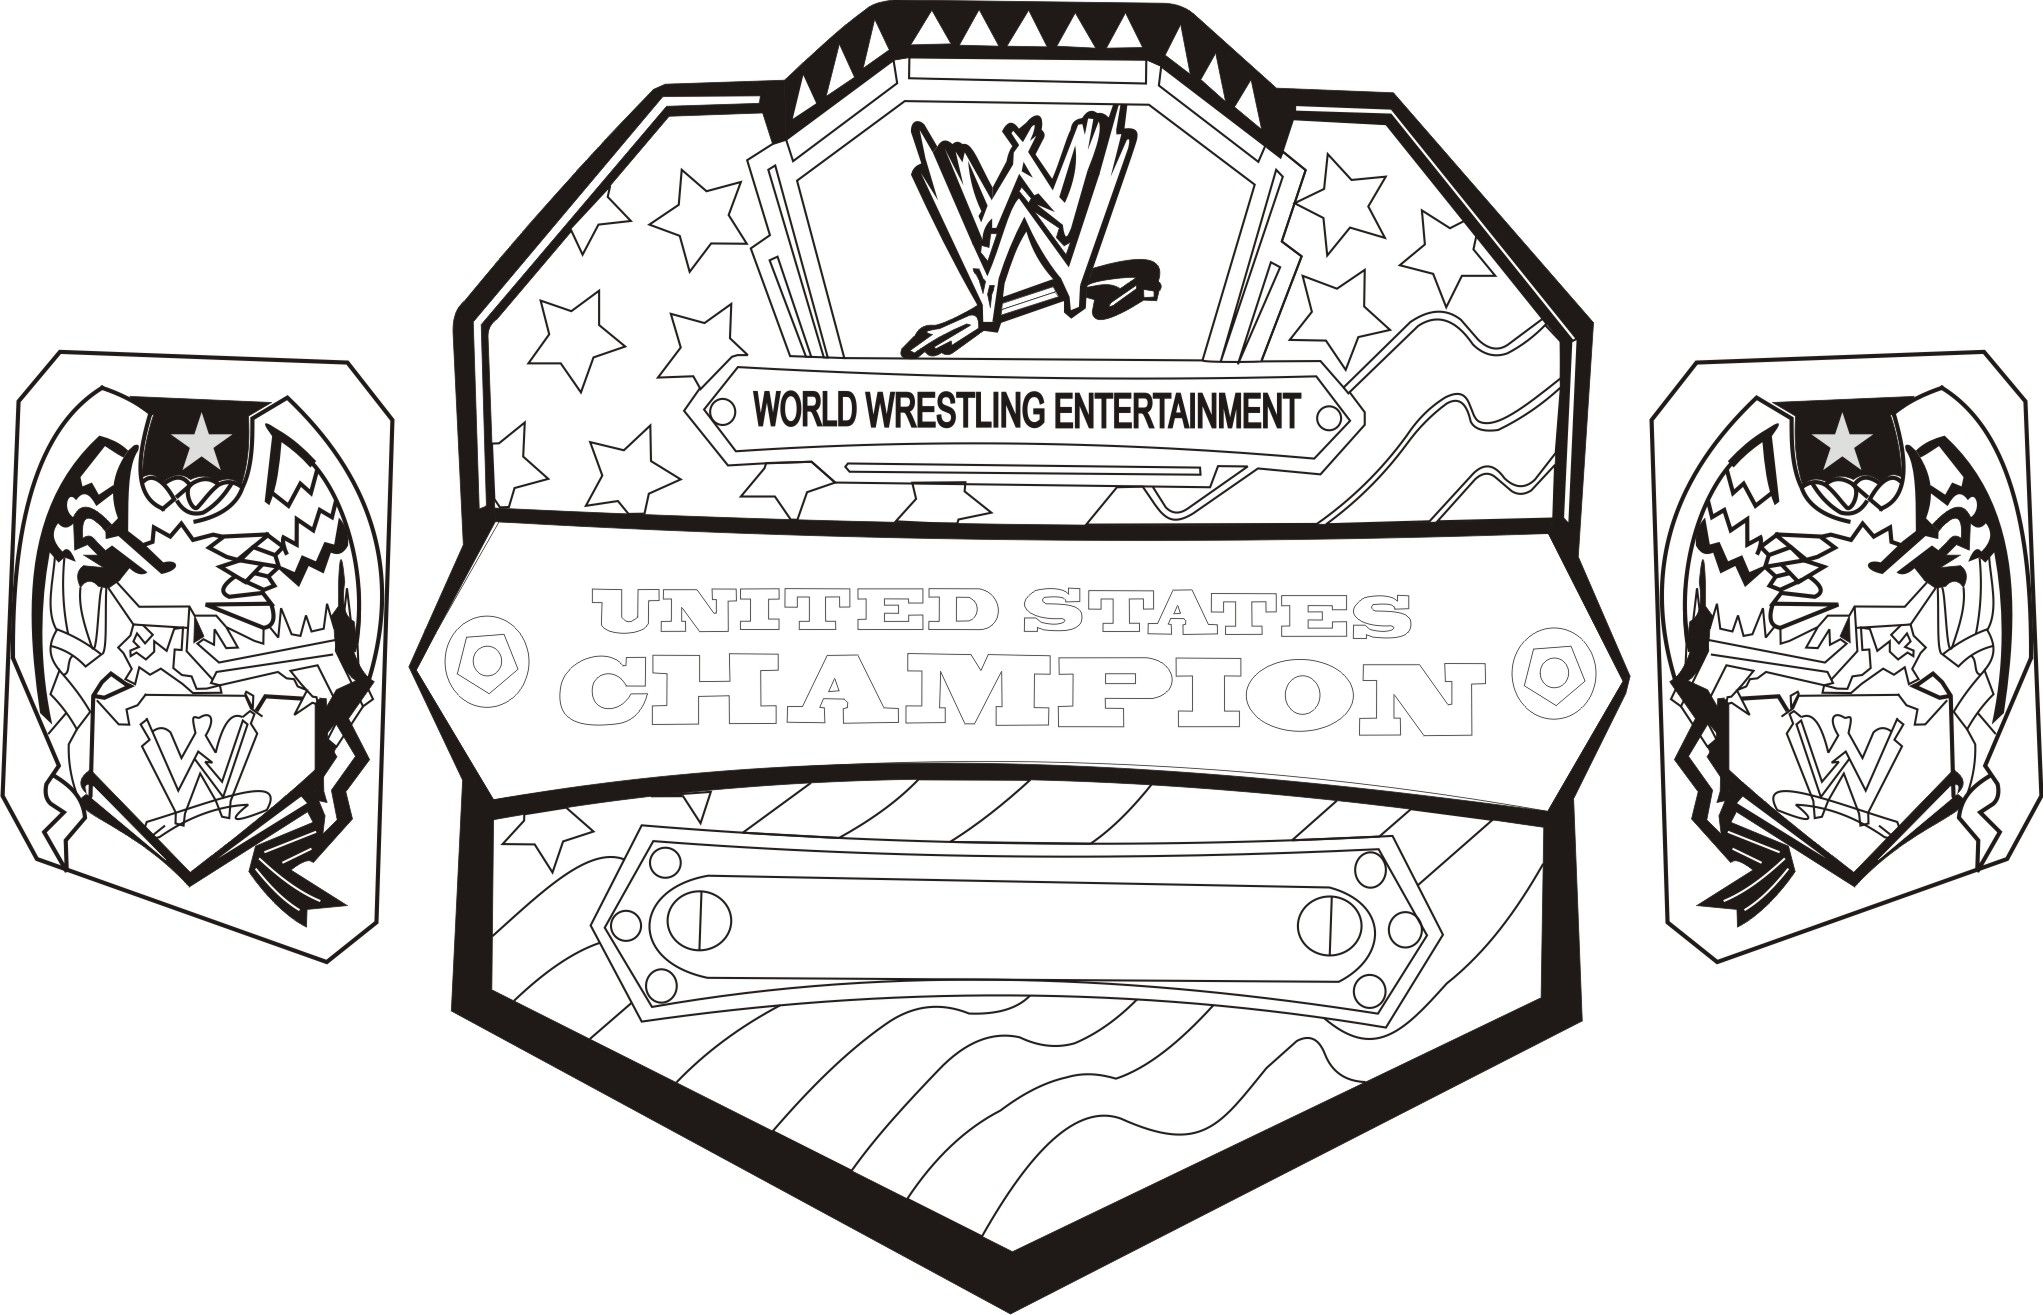 Coloring Pages Wrestling Color Pages wrestling color pages eassume com eassume